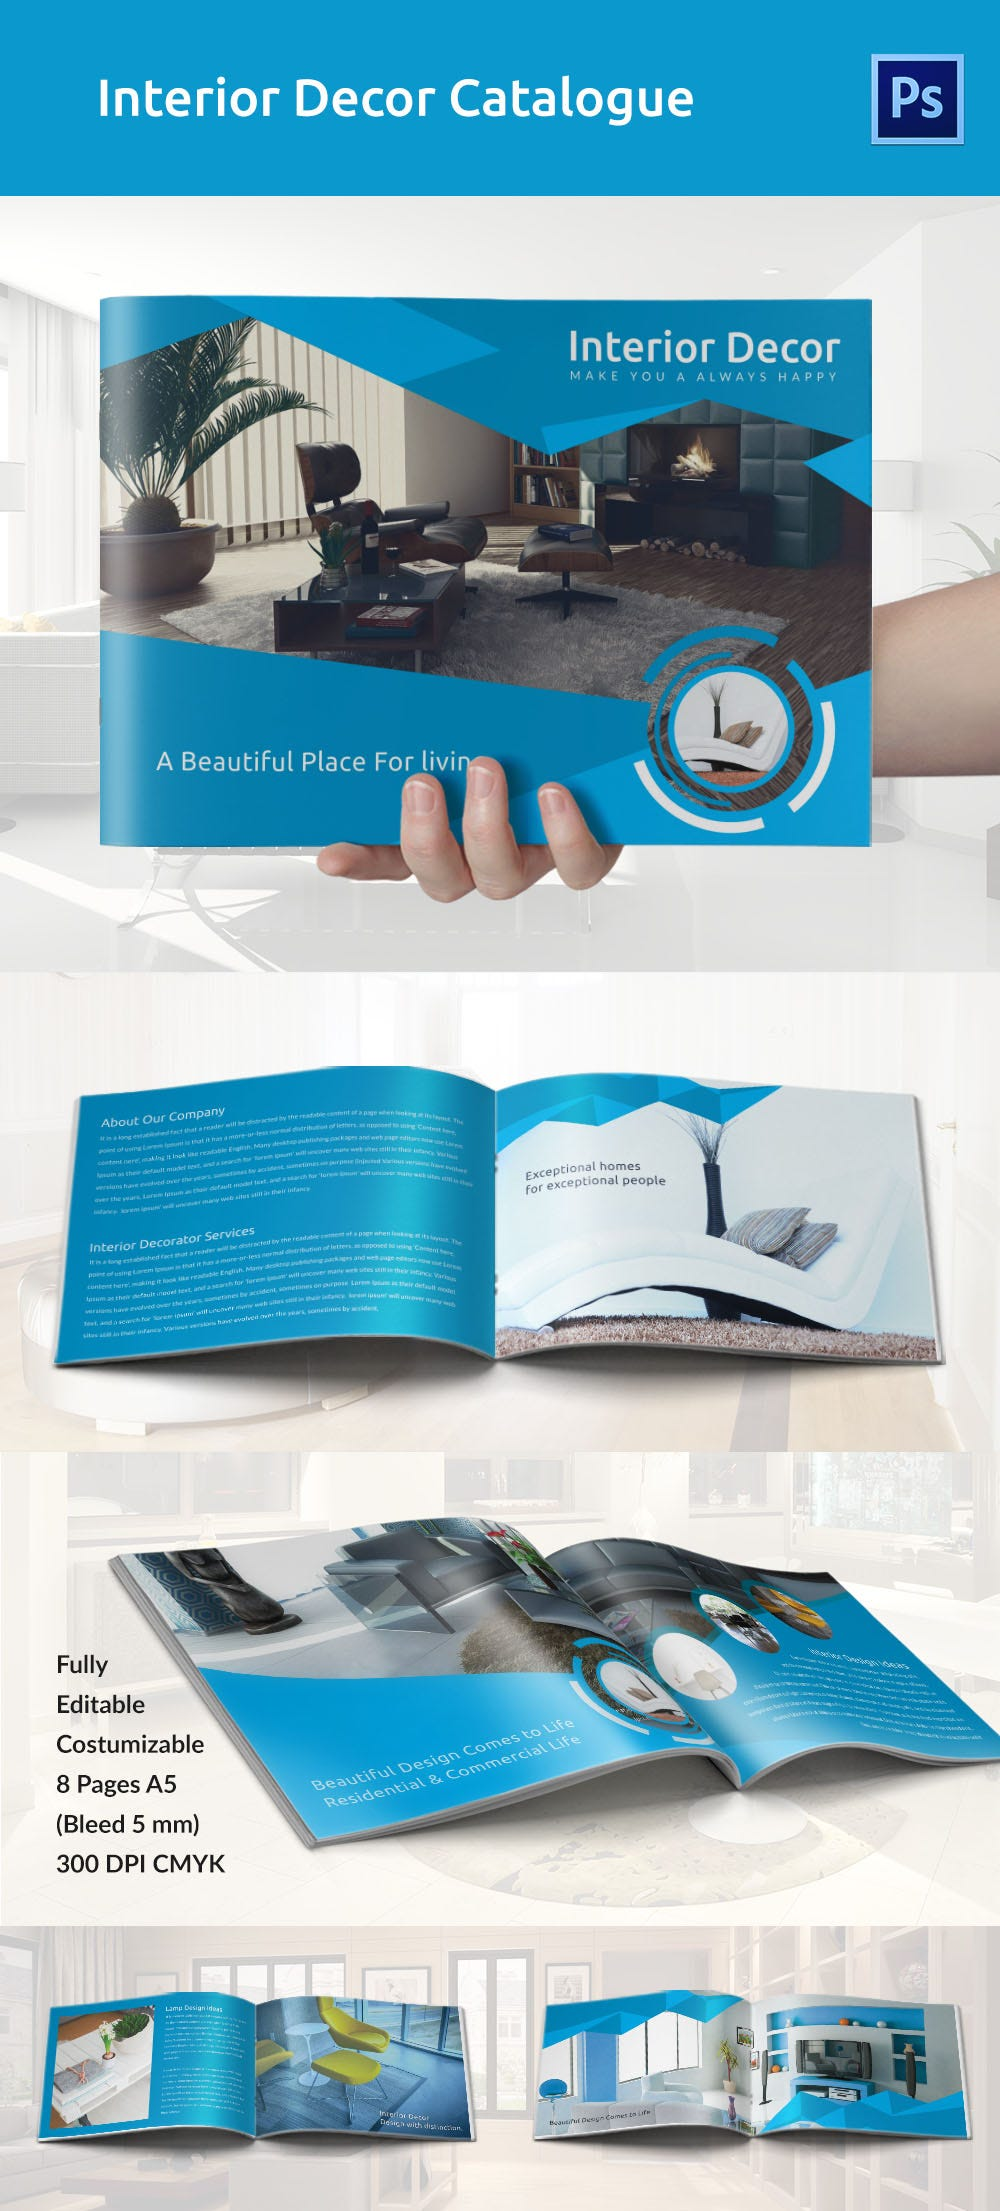 17 interior decoration brochure free word psd pdf eps indesign format download free for Catalogue staff decor pdf